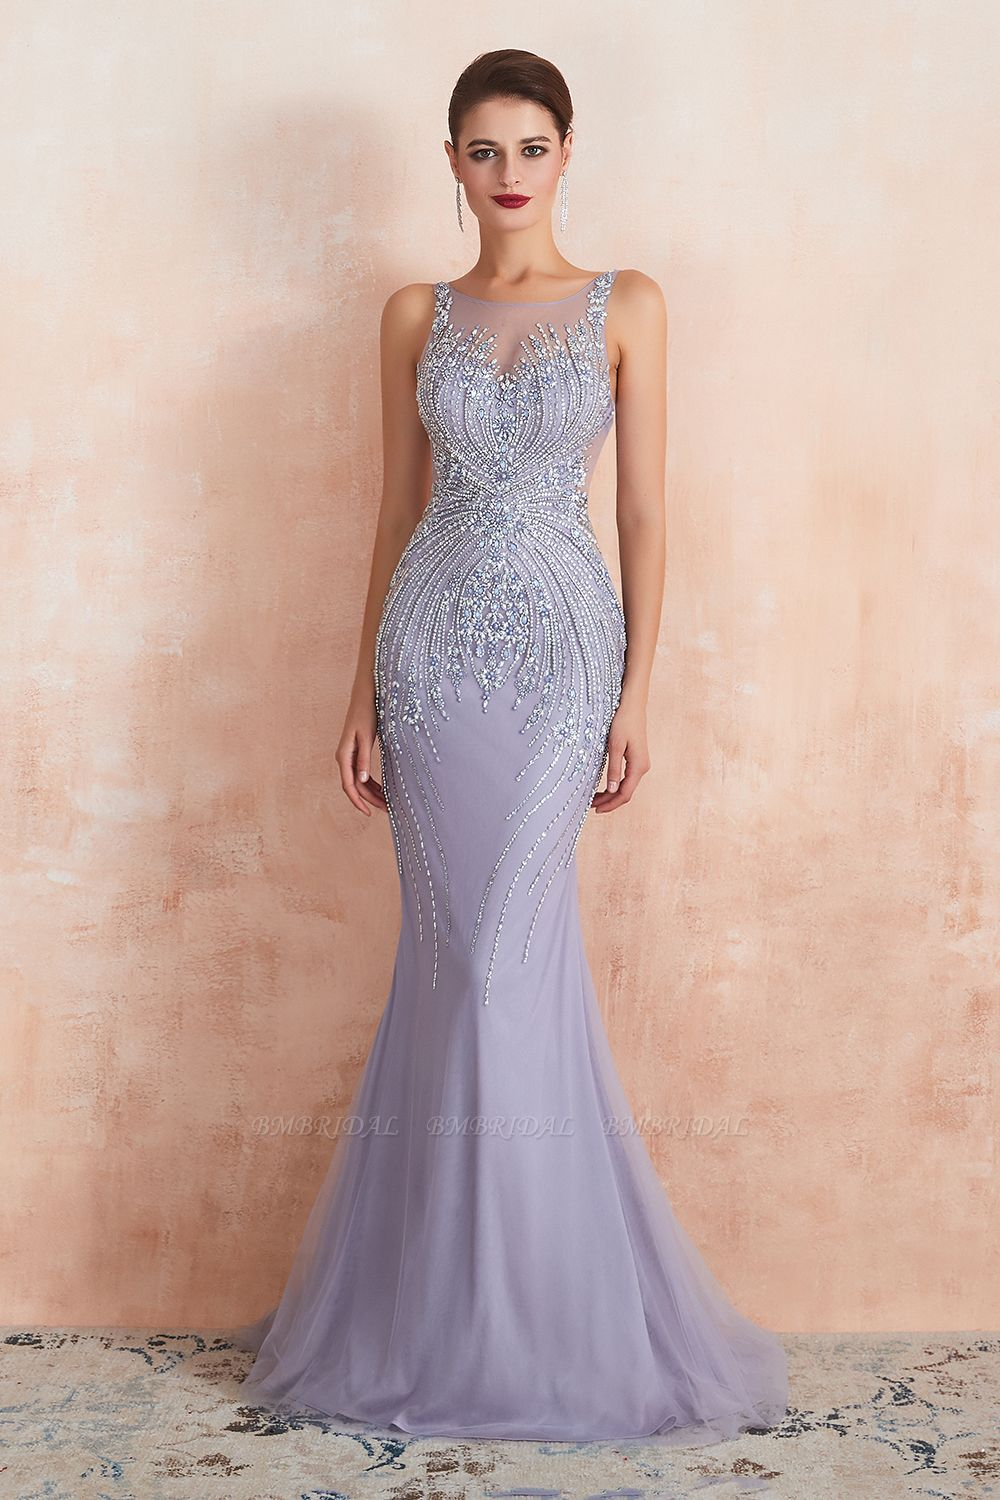 BMbridal Luxurious Lilac Crystal Prom Dress Mermaid Long Evening Gowns